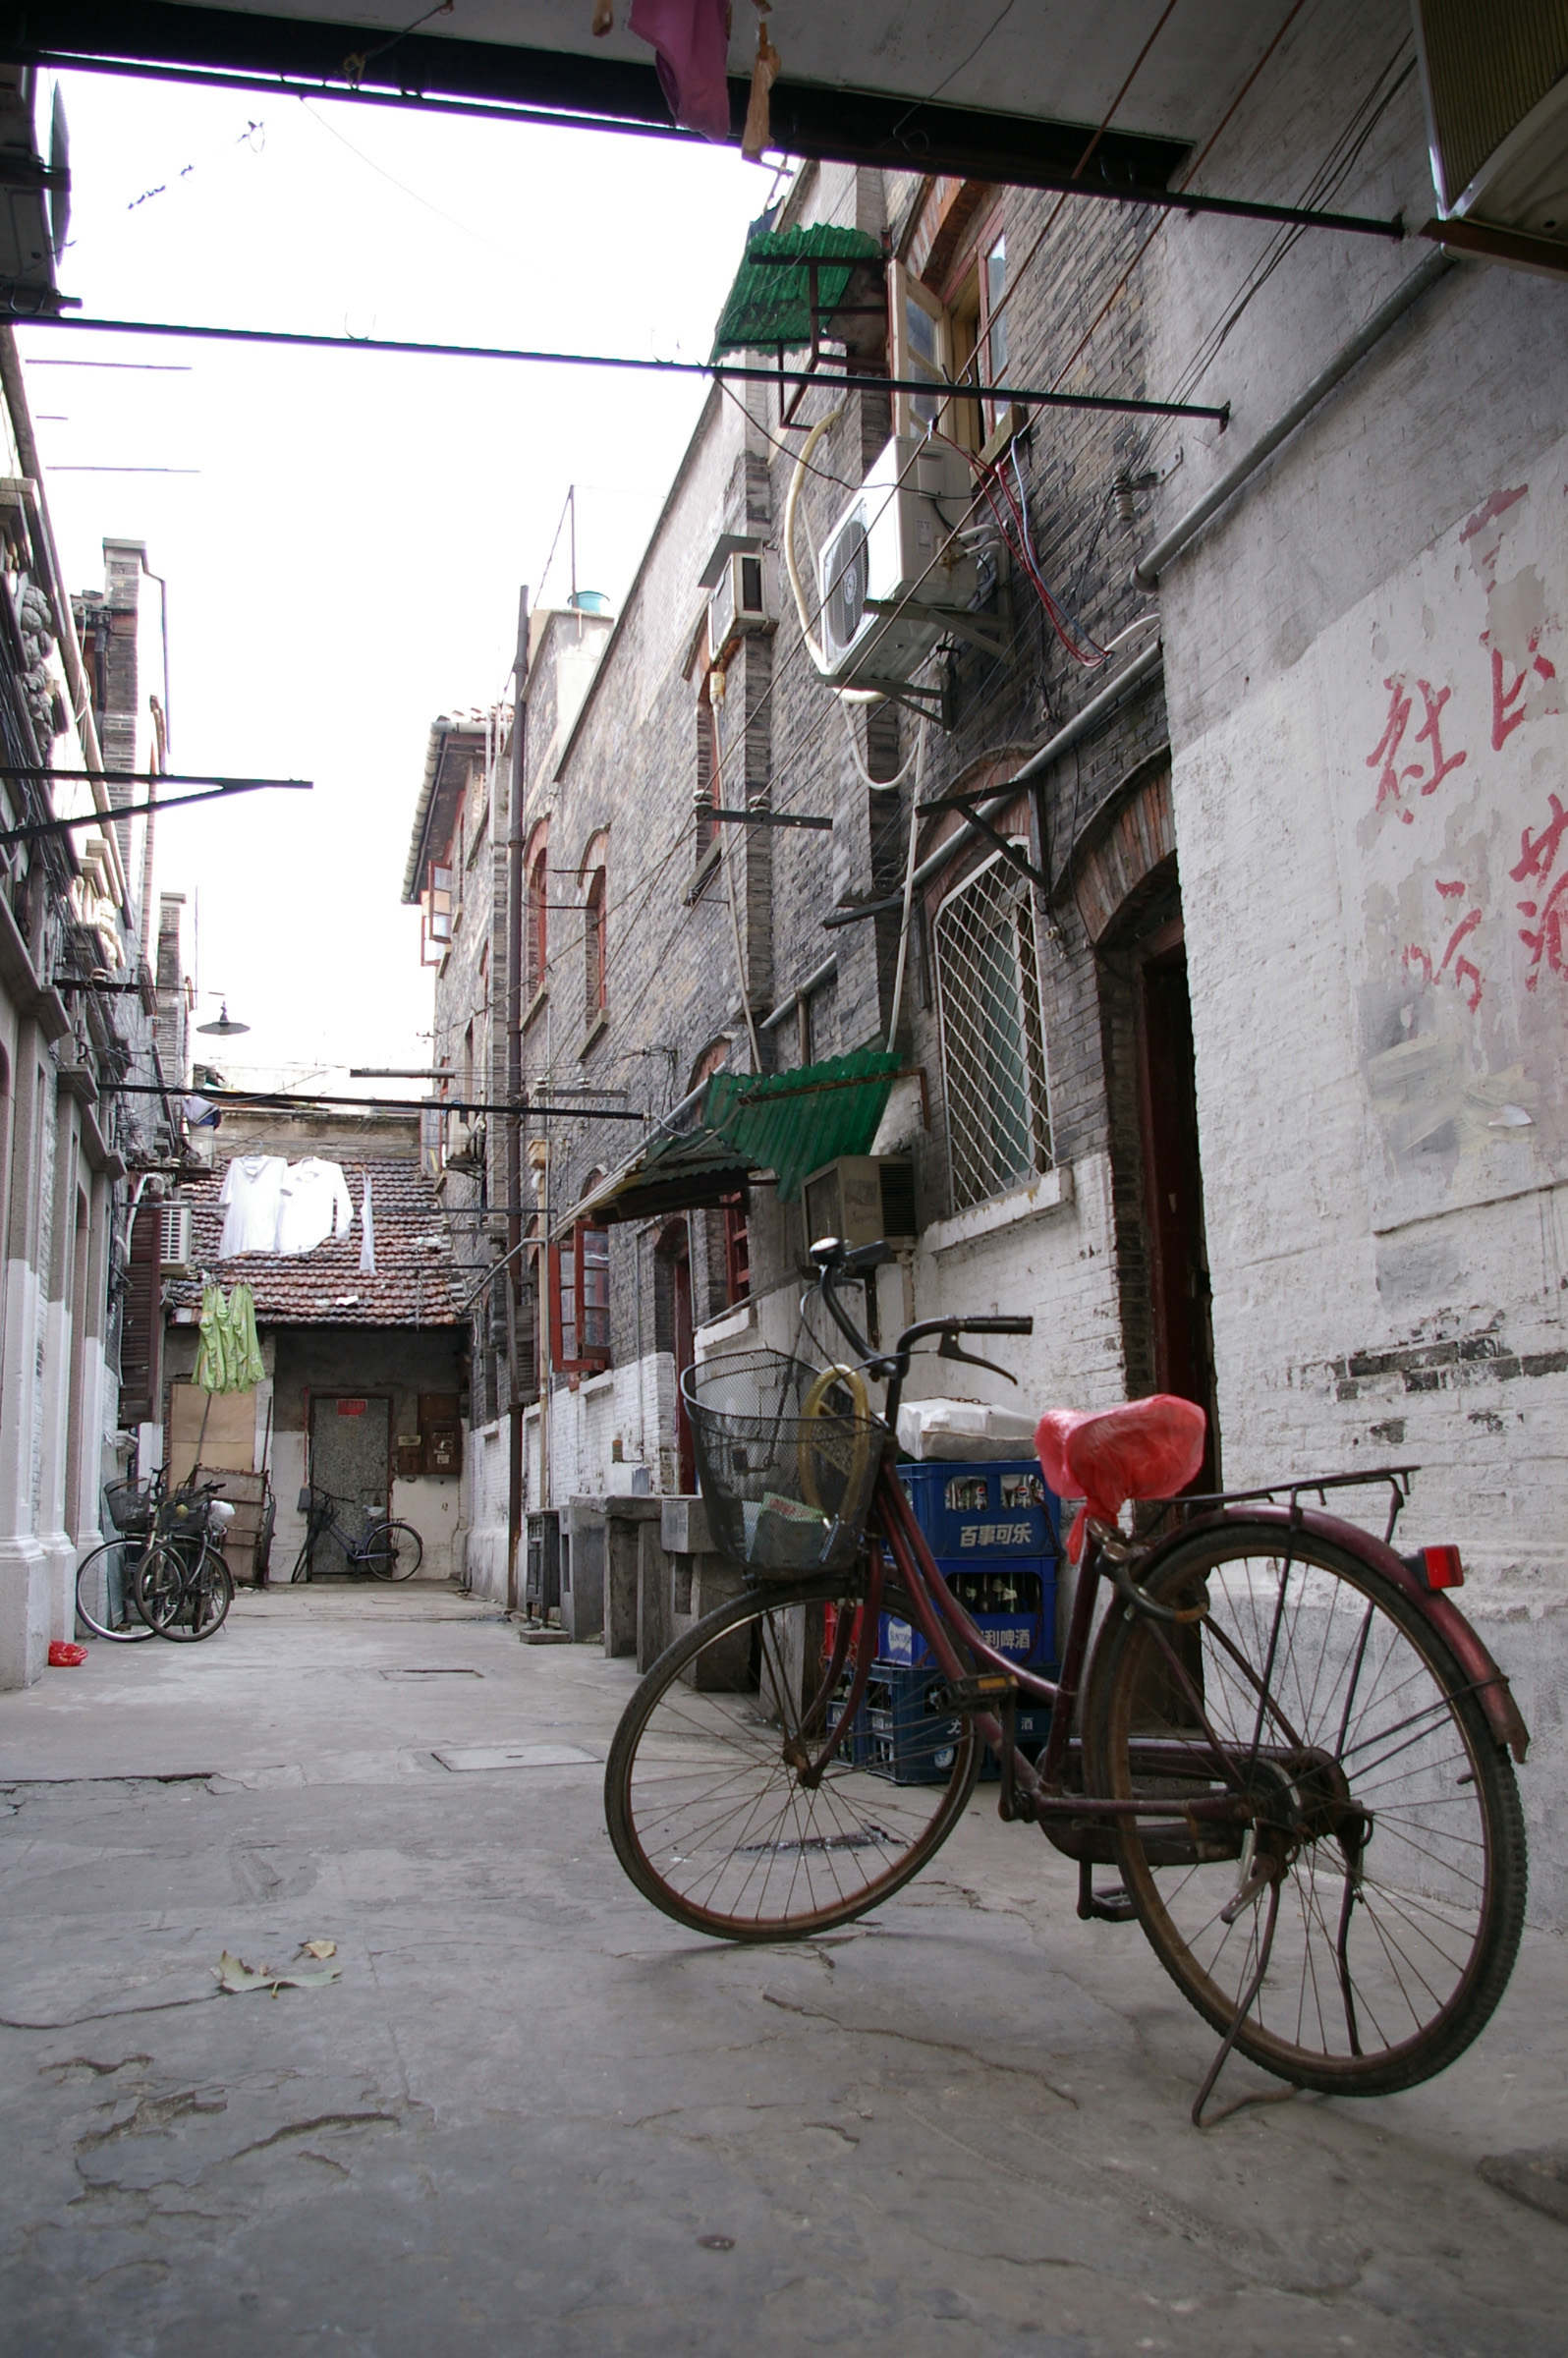 Old Bicycle at Vintage Compound Pathway with Ordinary Houses on Sides in China